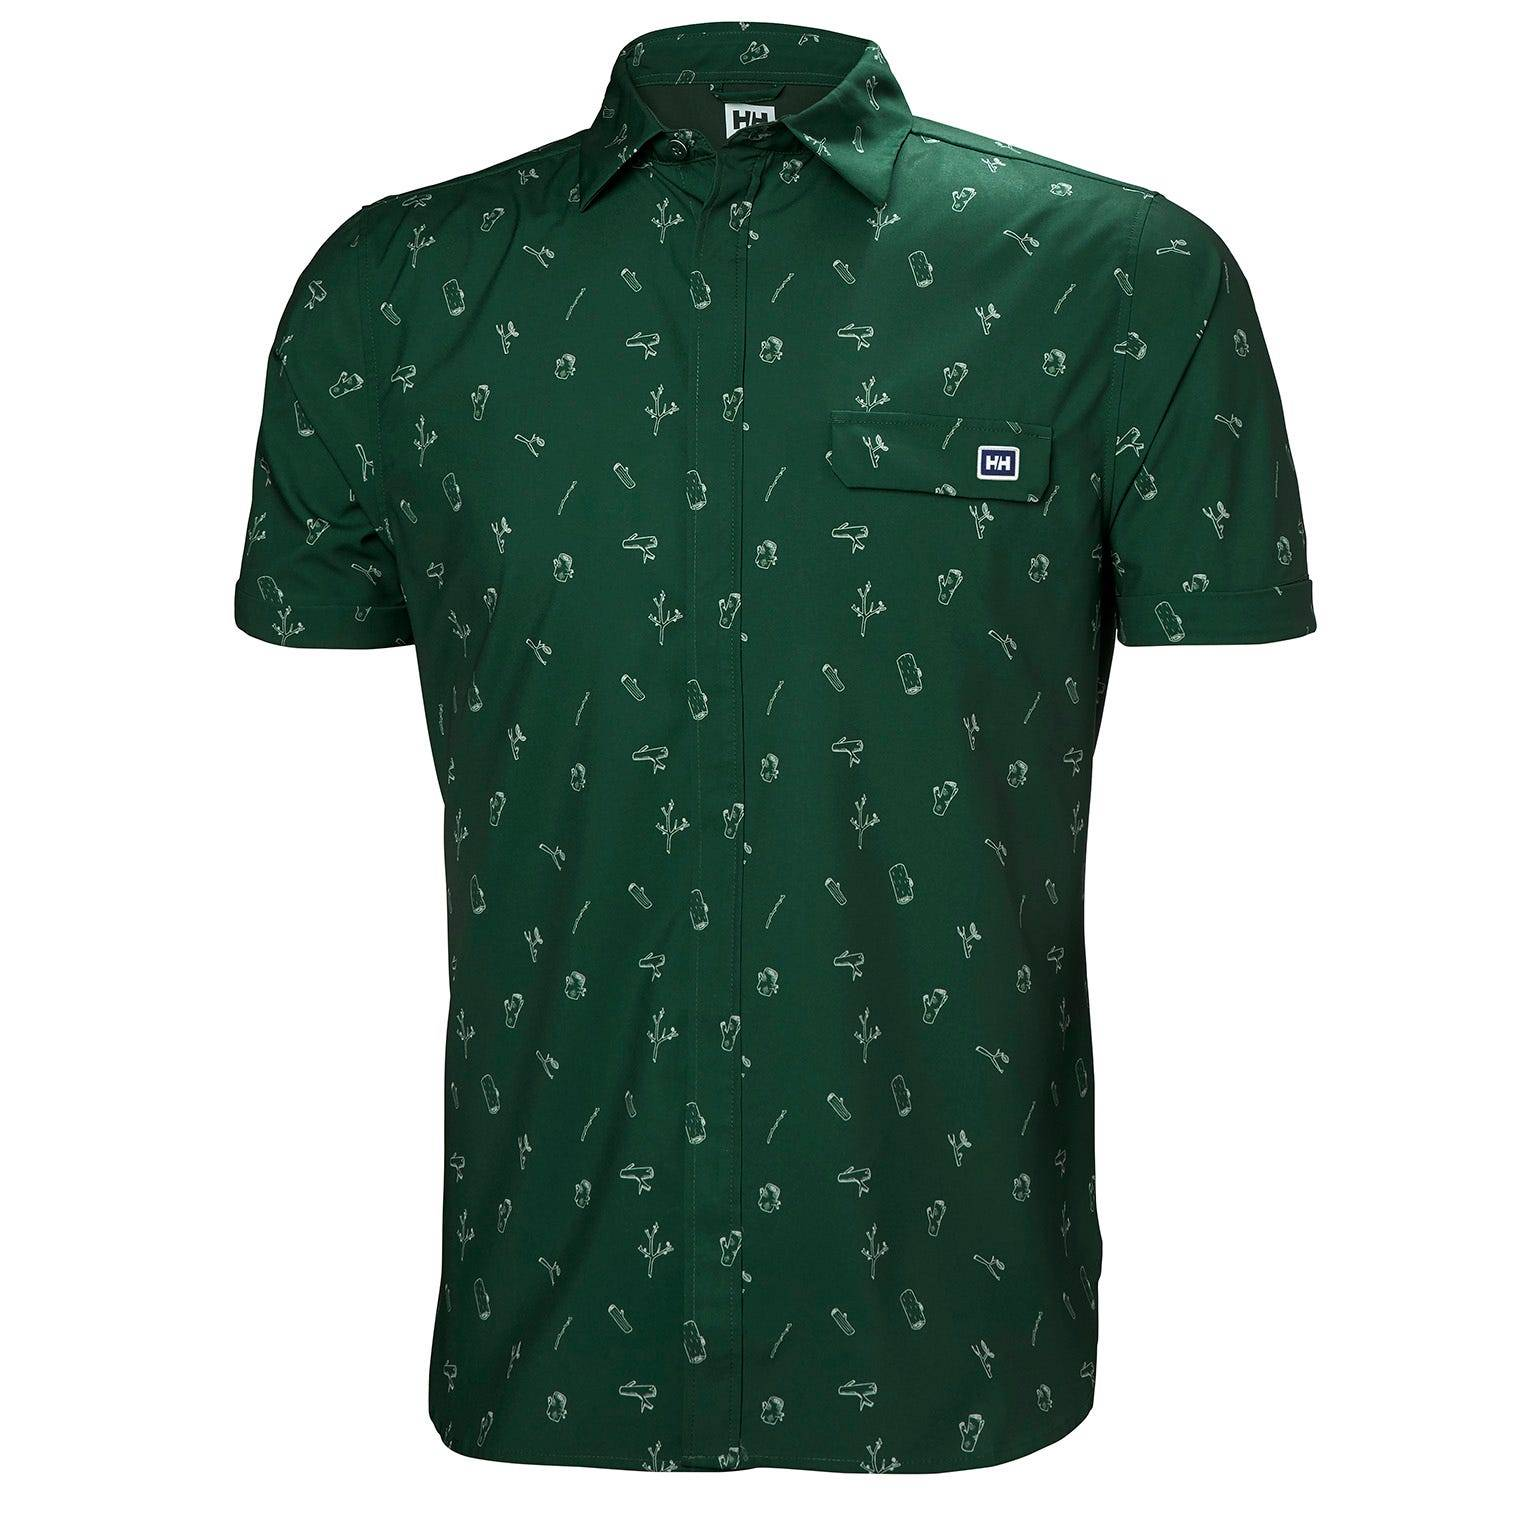 Helly Hansen Oya Shirt Green L